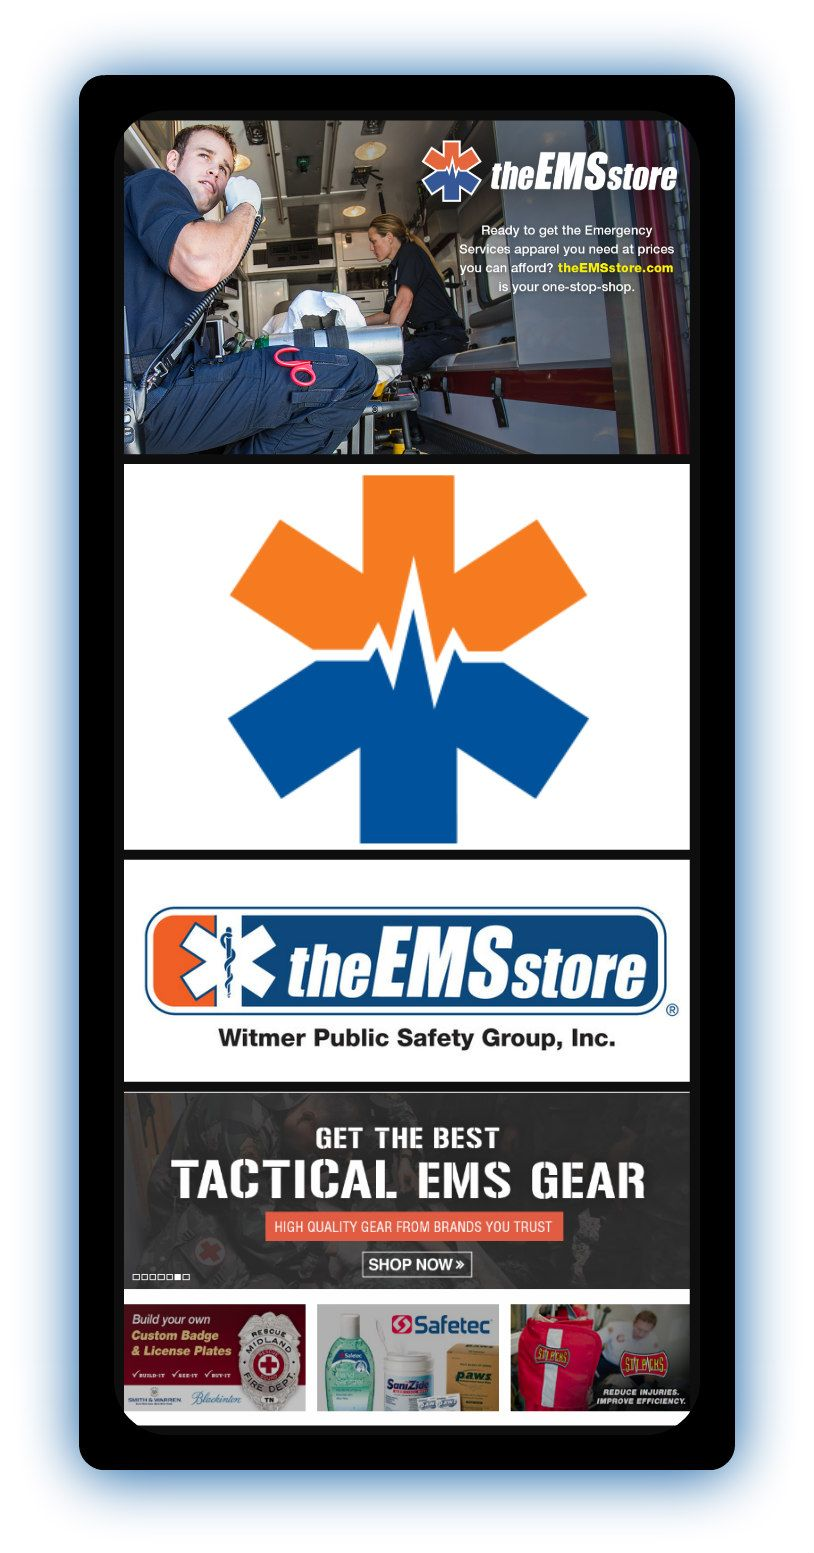 theEMSstore delivers medical equipment and supplies to EMS